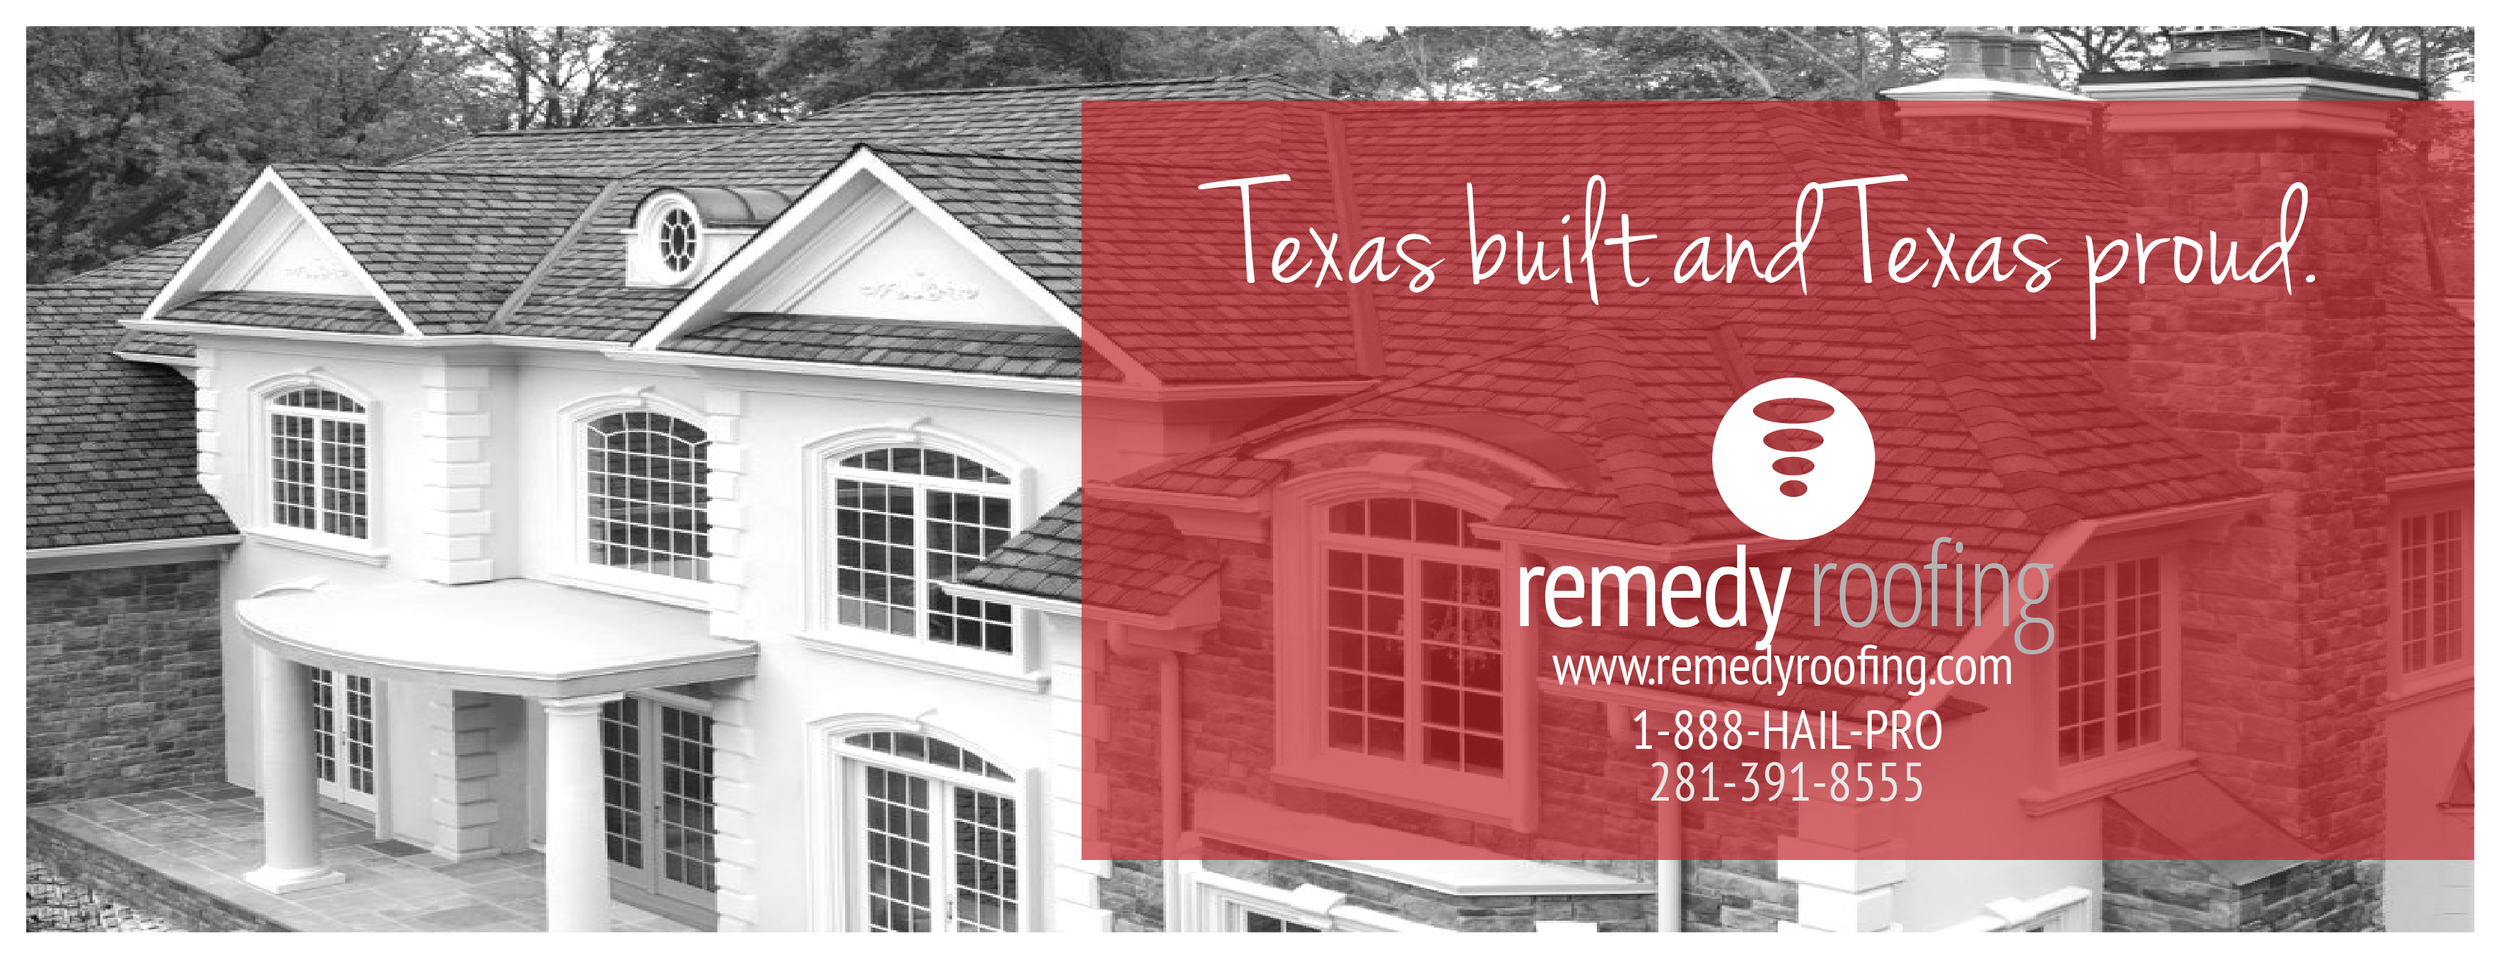 Remedy Roofing fb cover-01.jpg